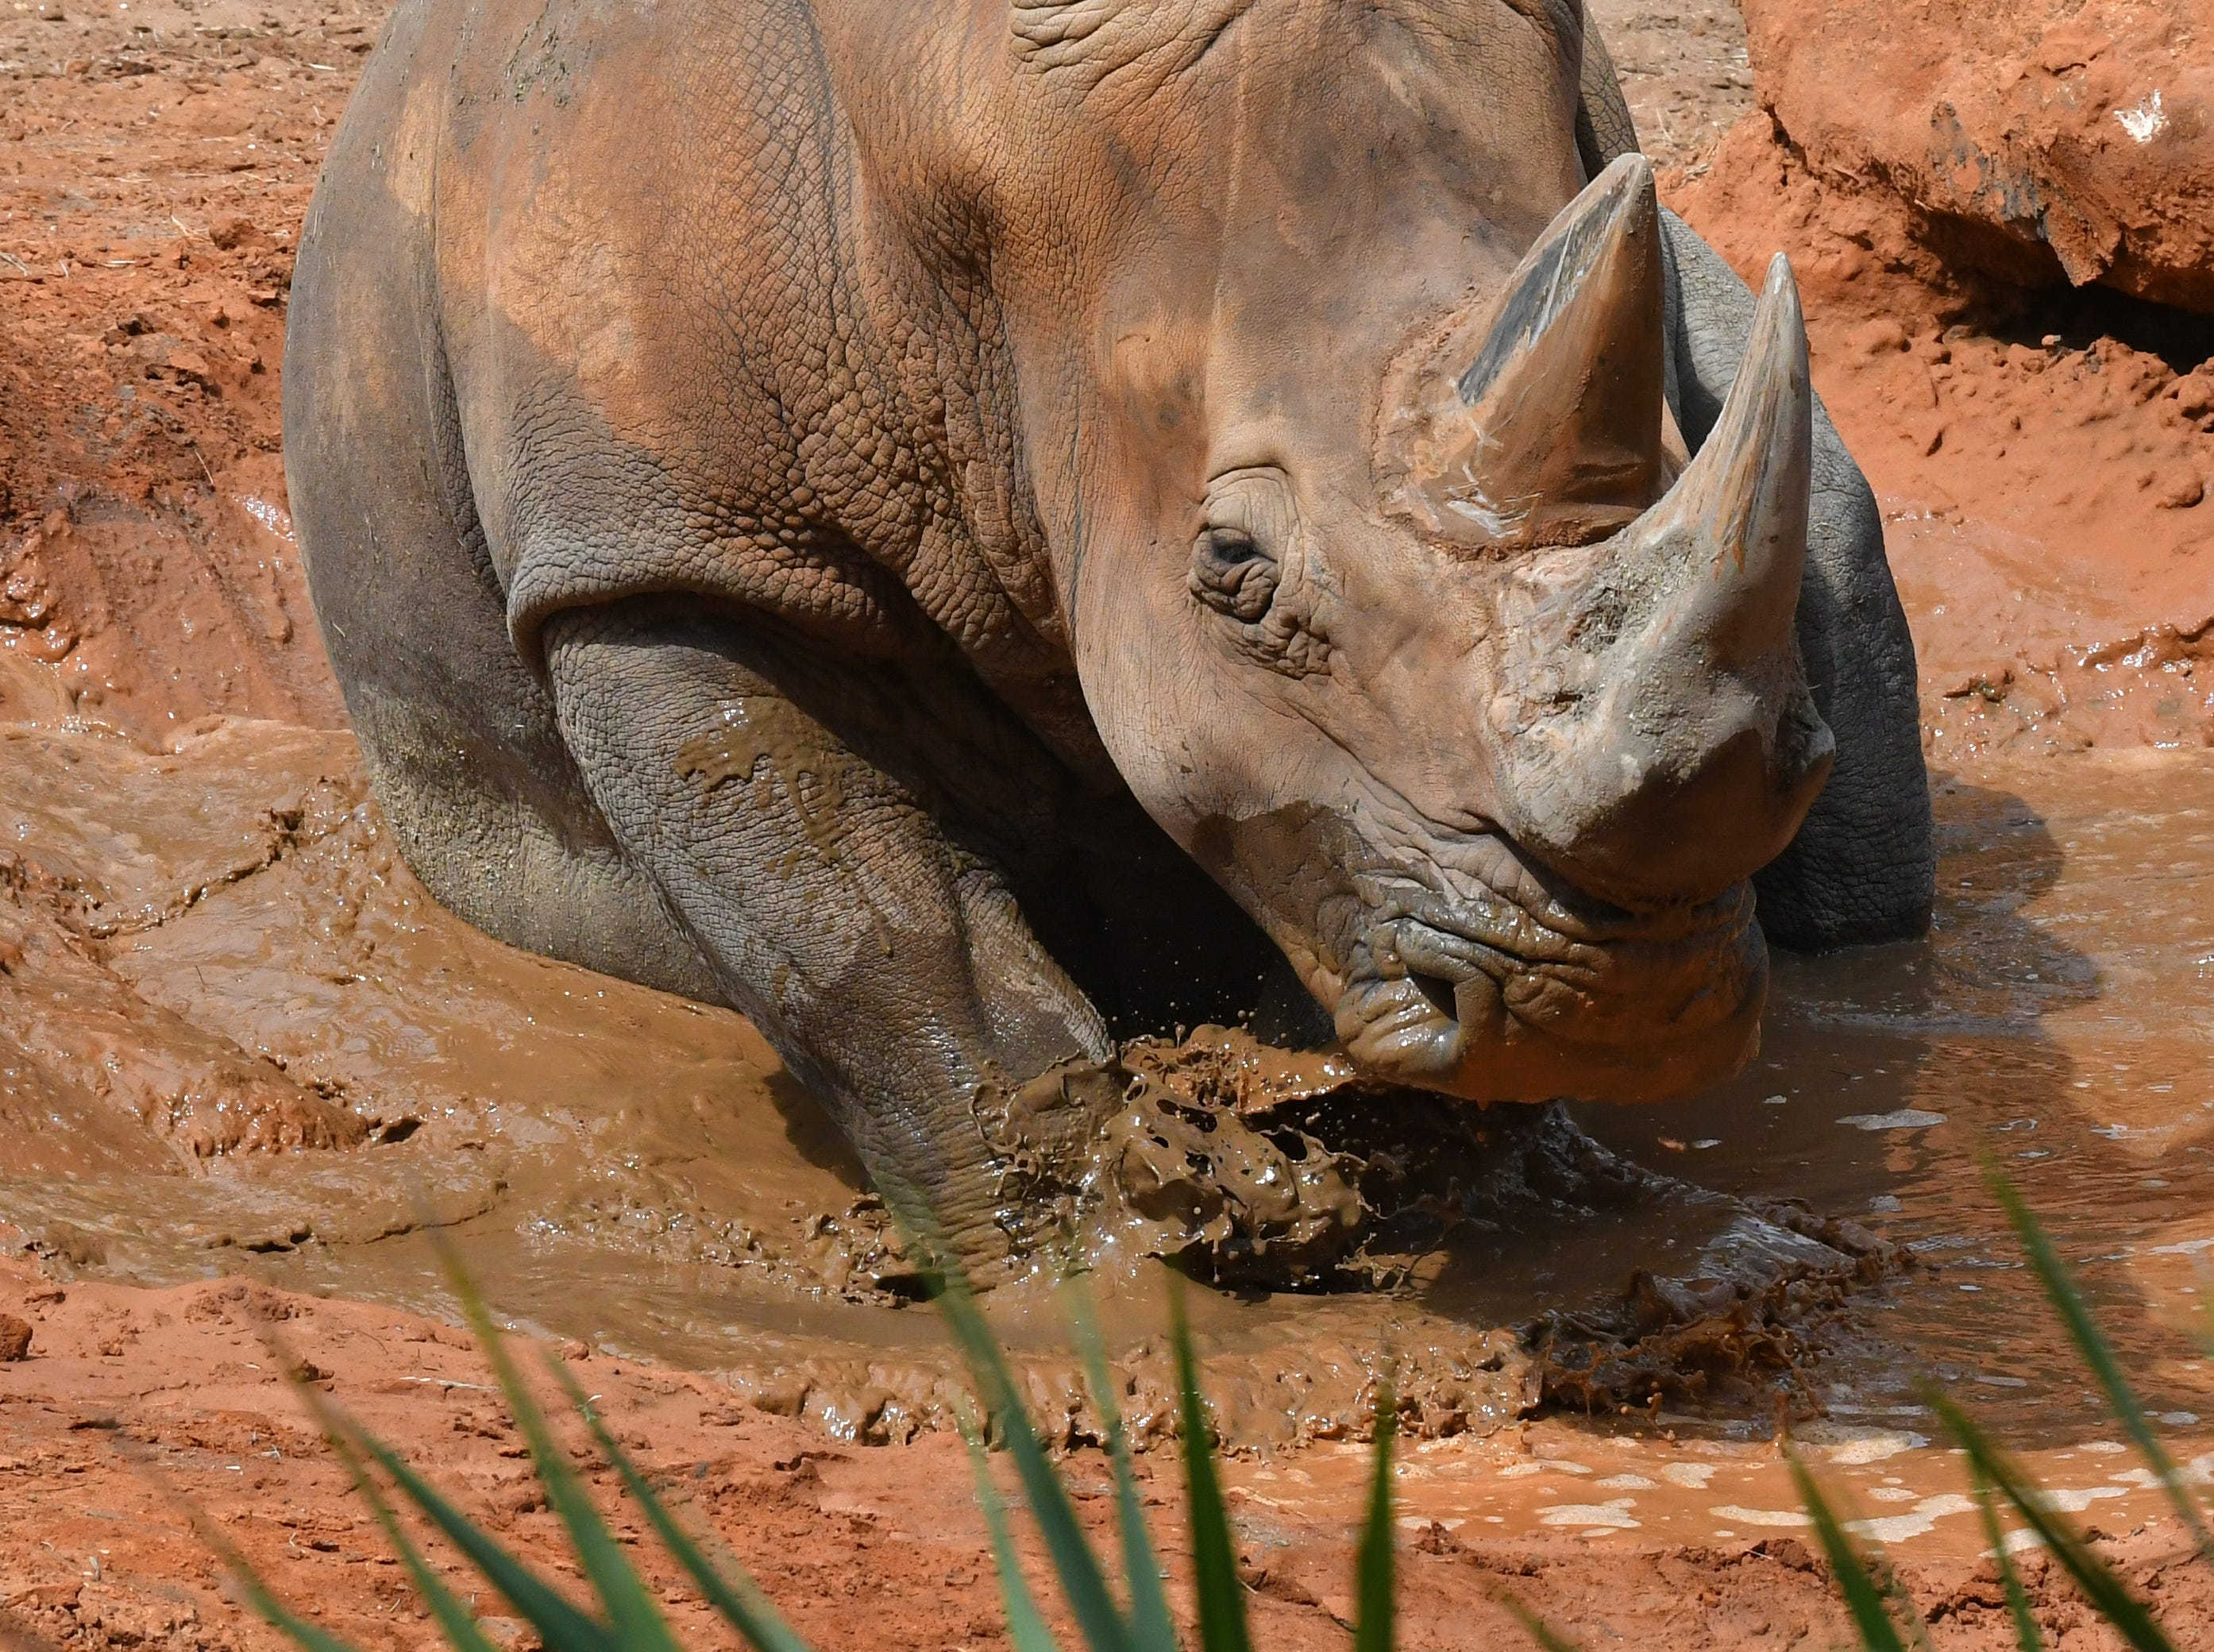 Rhino Encounter mud bath.  Viera is a popular visit for locals and tourists alike.